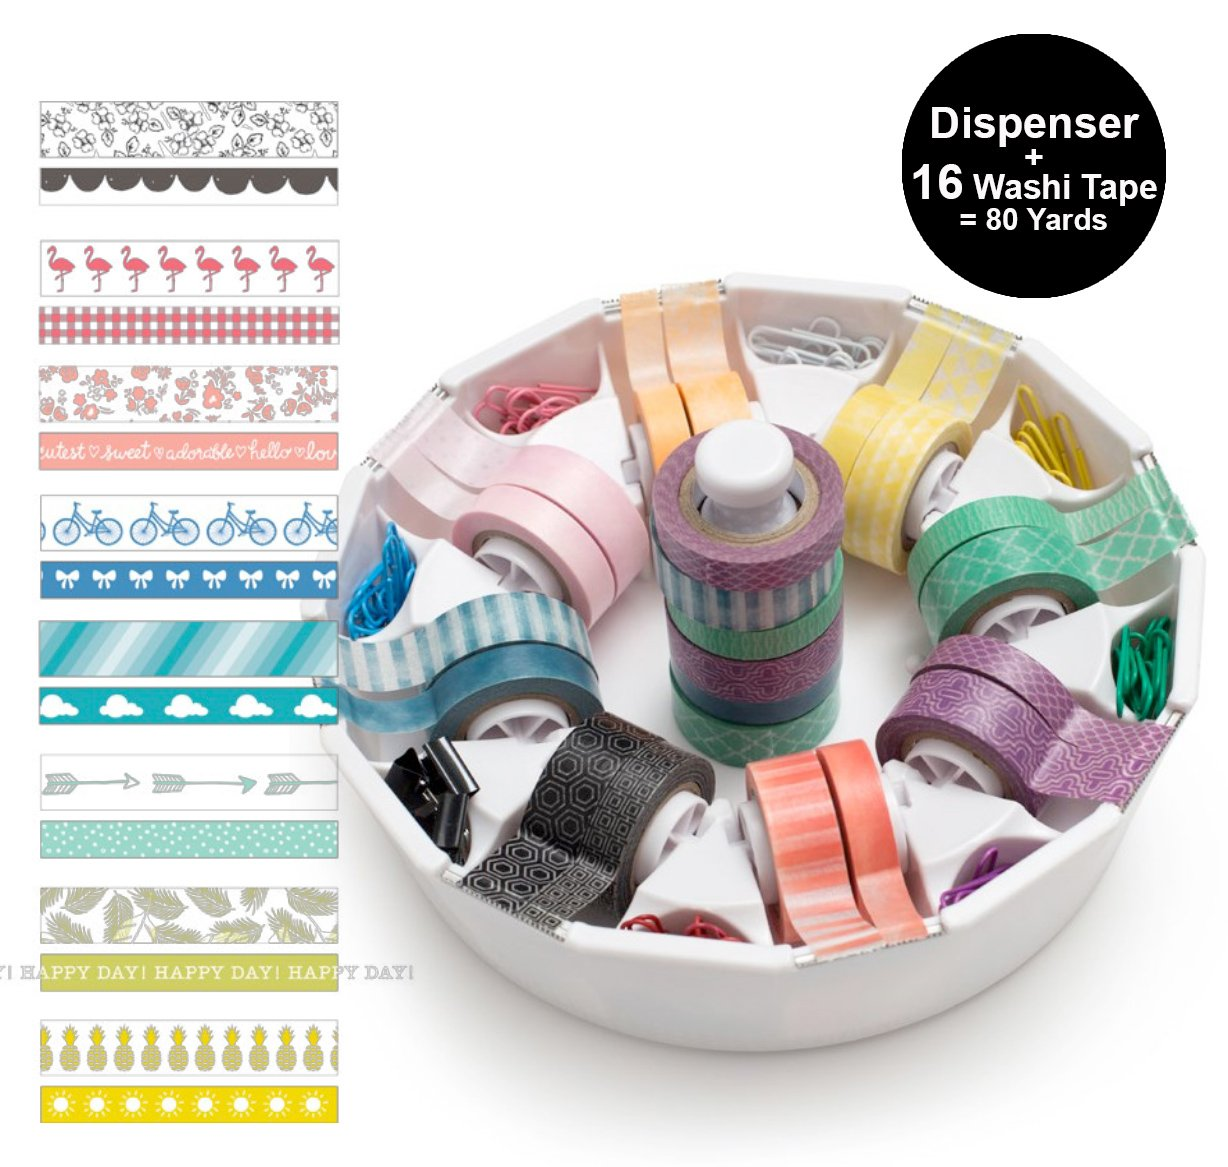 We R Memory Keepers Washi Tape Dispenser Dispenser Dispenser  16 Washi Tapes B077S8GCMD | Qualitätskönigin  7a8921